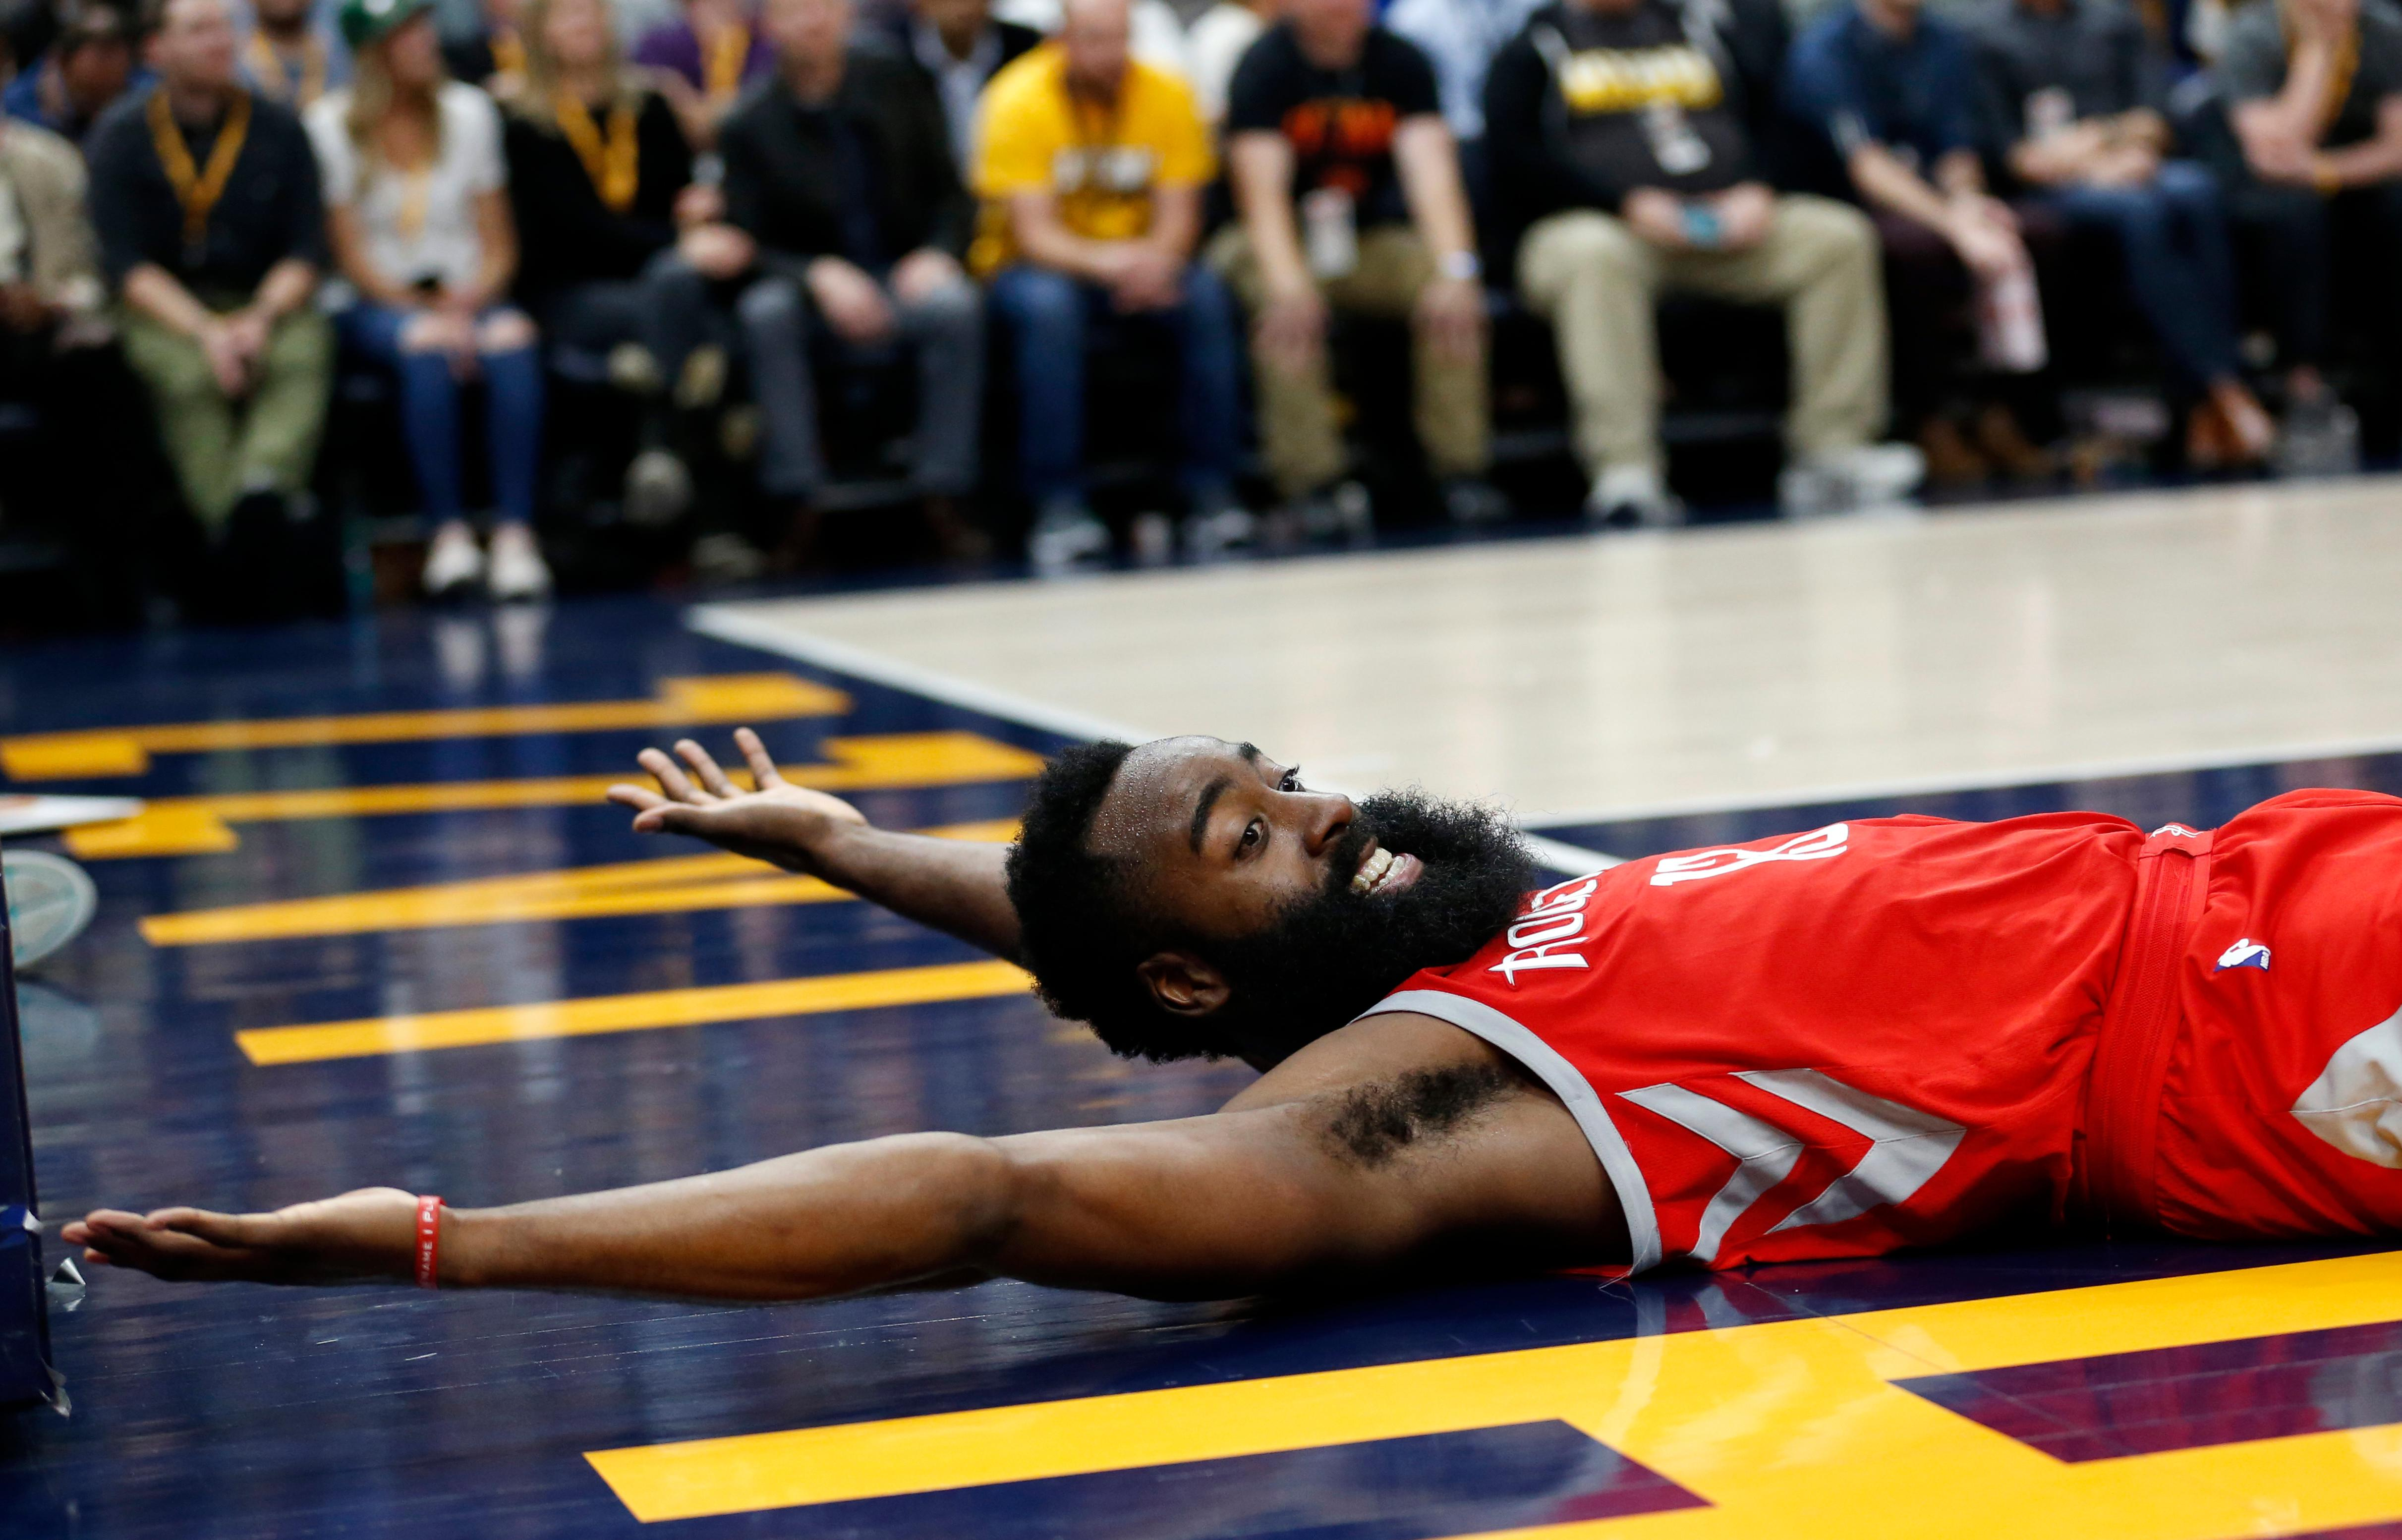 Houston Rockets guard James Harden (13) looks for a call in the second half during an NBA basketball game against the Utah Jazz, Monday, Feb. 26, 2018, in Salt Lake City. (AP Photo/Rick Bowmer)